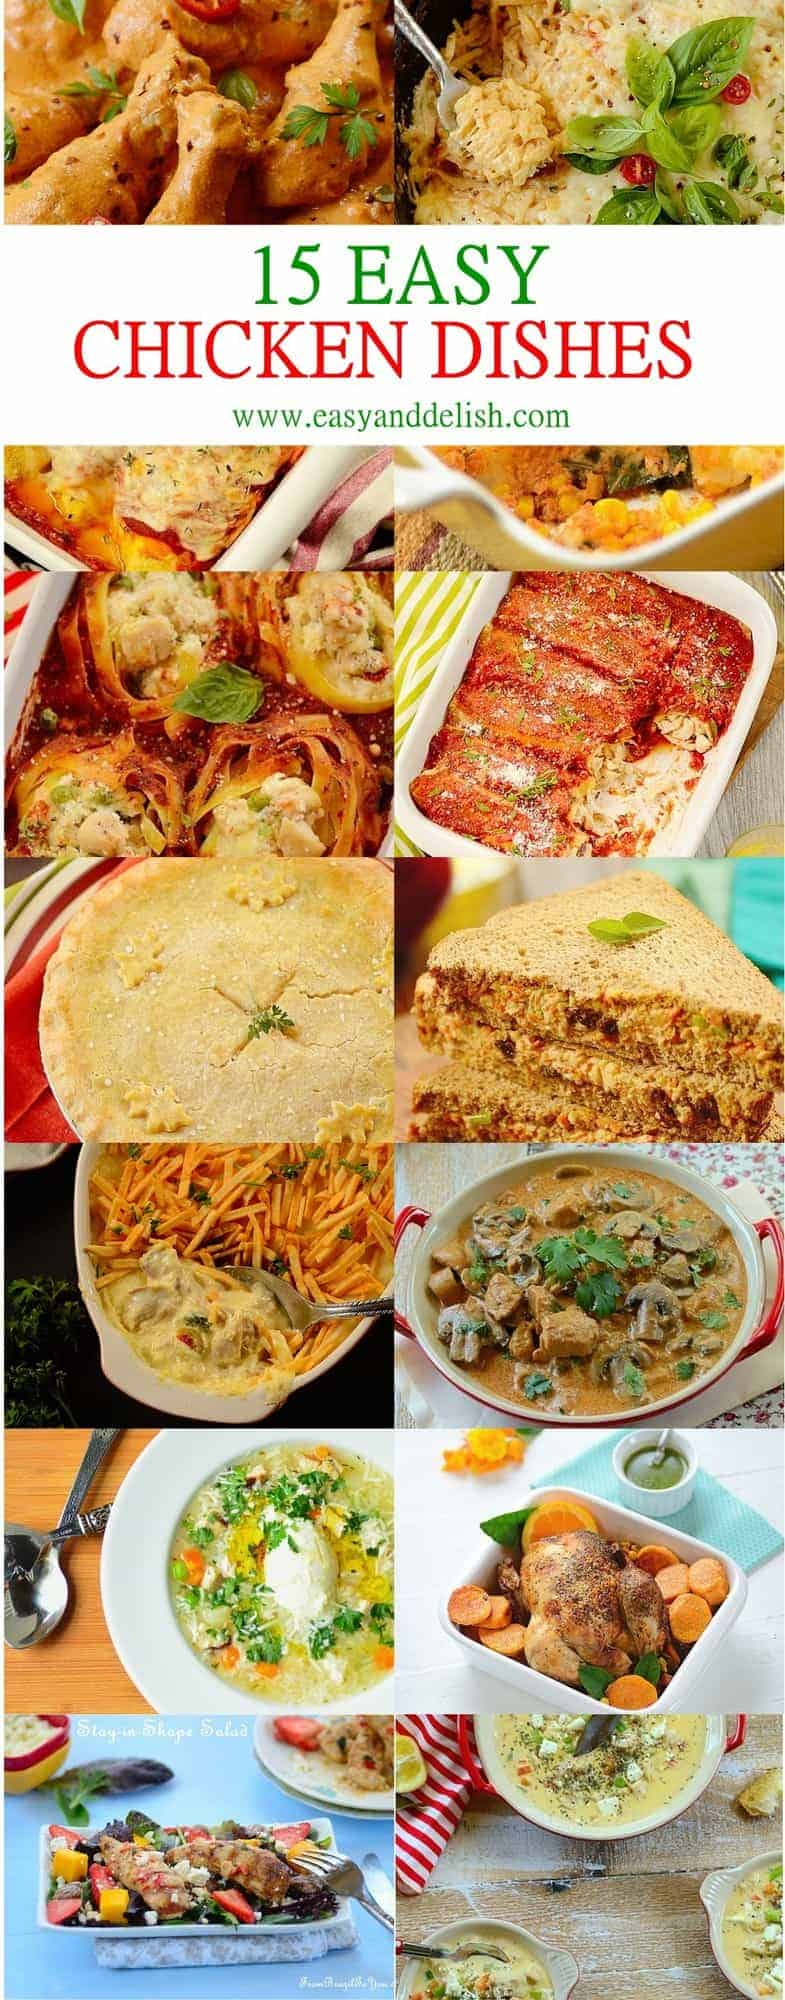 15-easy-chicken-dishes